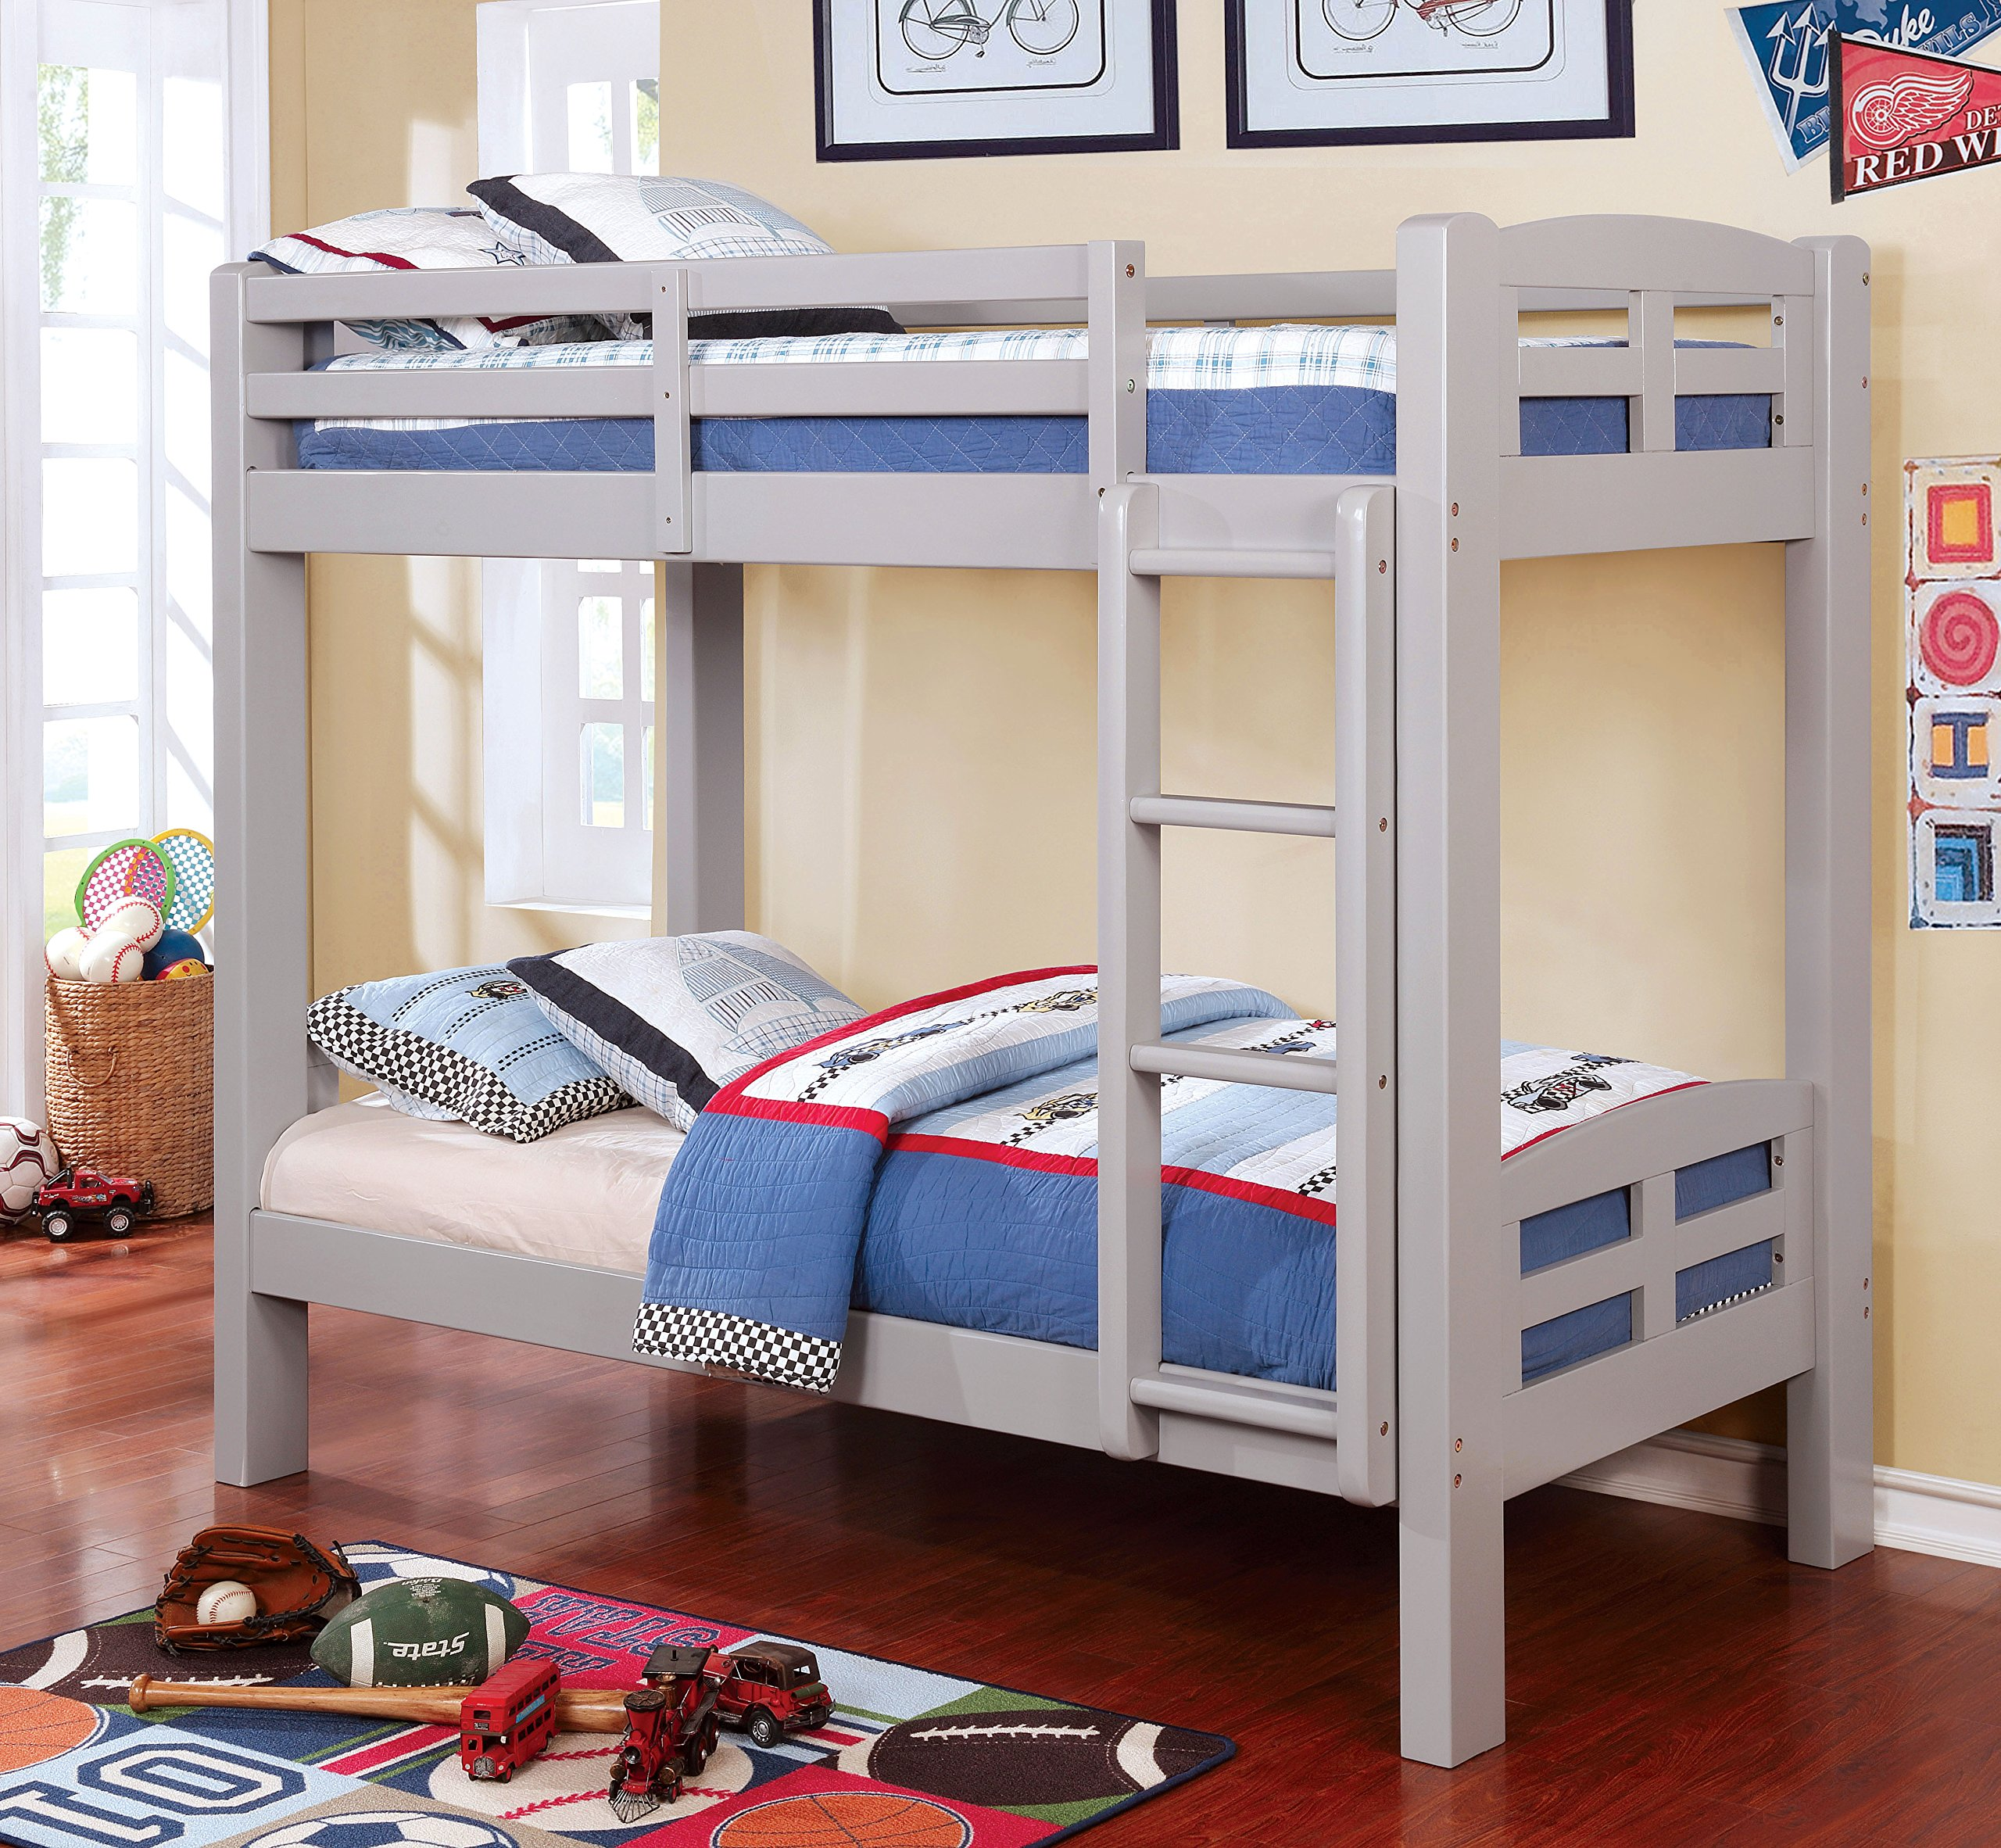 HOMES: Inside + Out IDF-BK618GY Tenner Bunk Bed Not Applicable, Twin / Twin